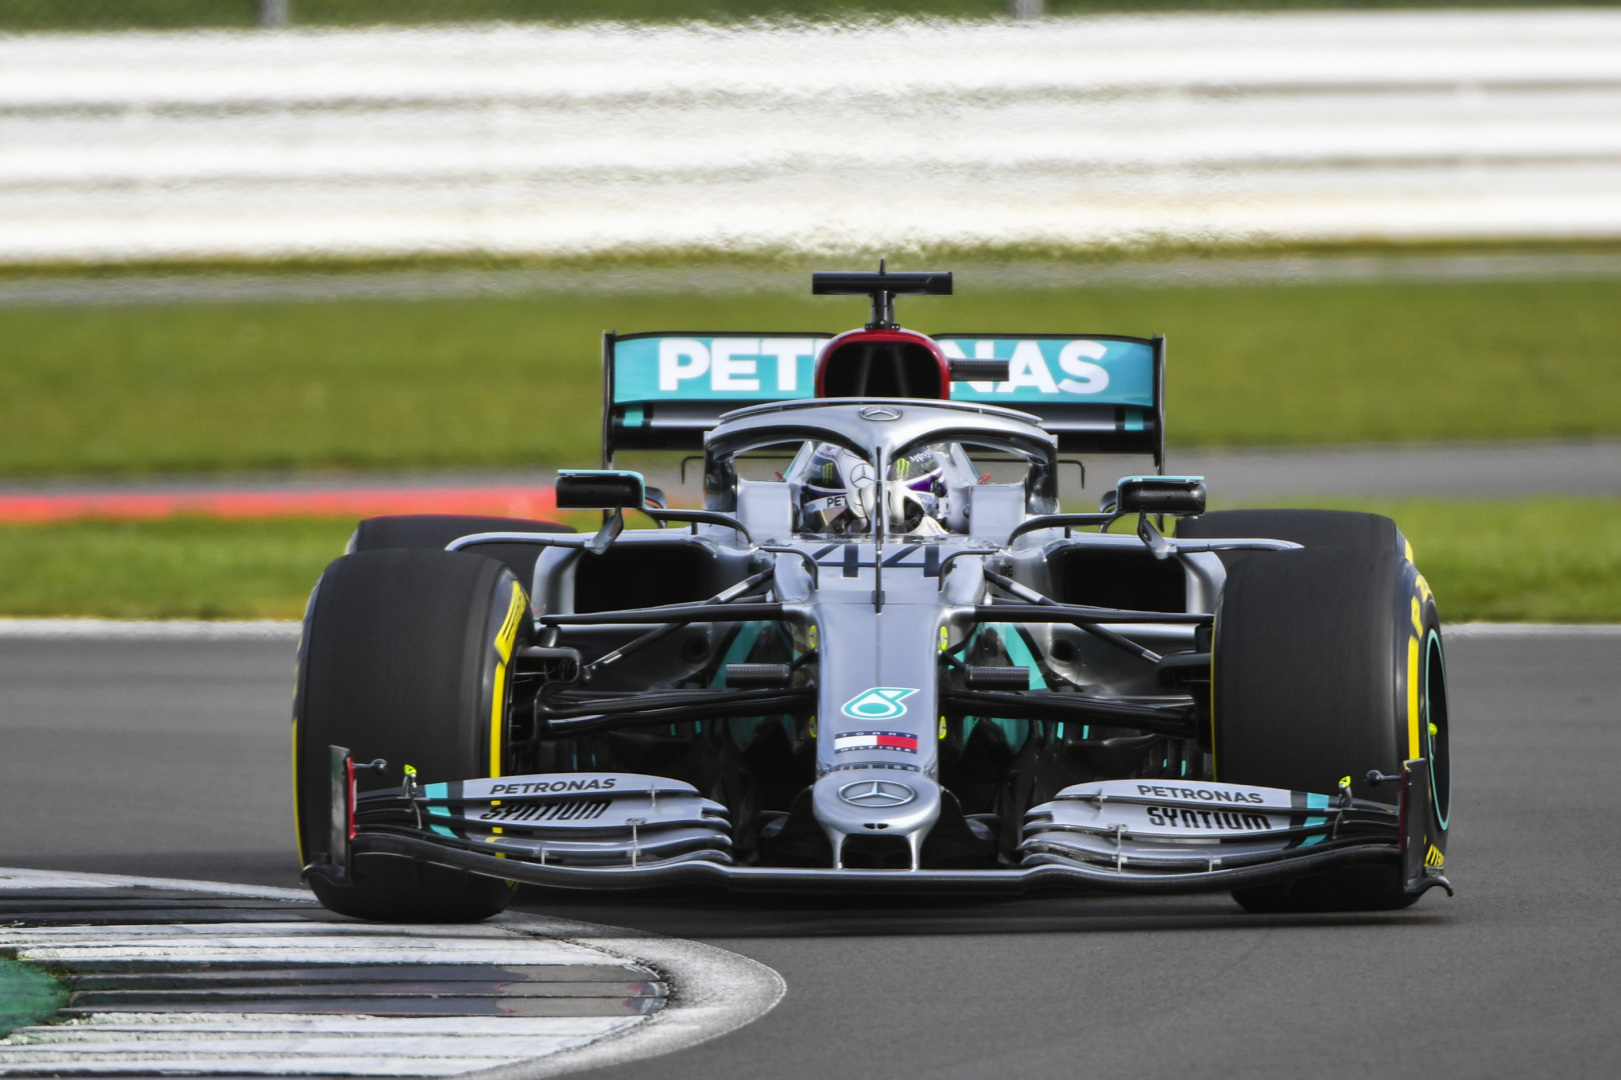 Hamilton reports 'smooth' initial run for new Mercedes W11 - F1i.com